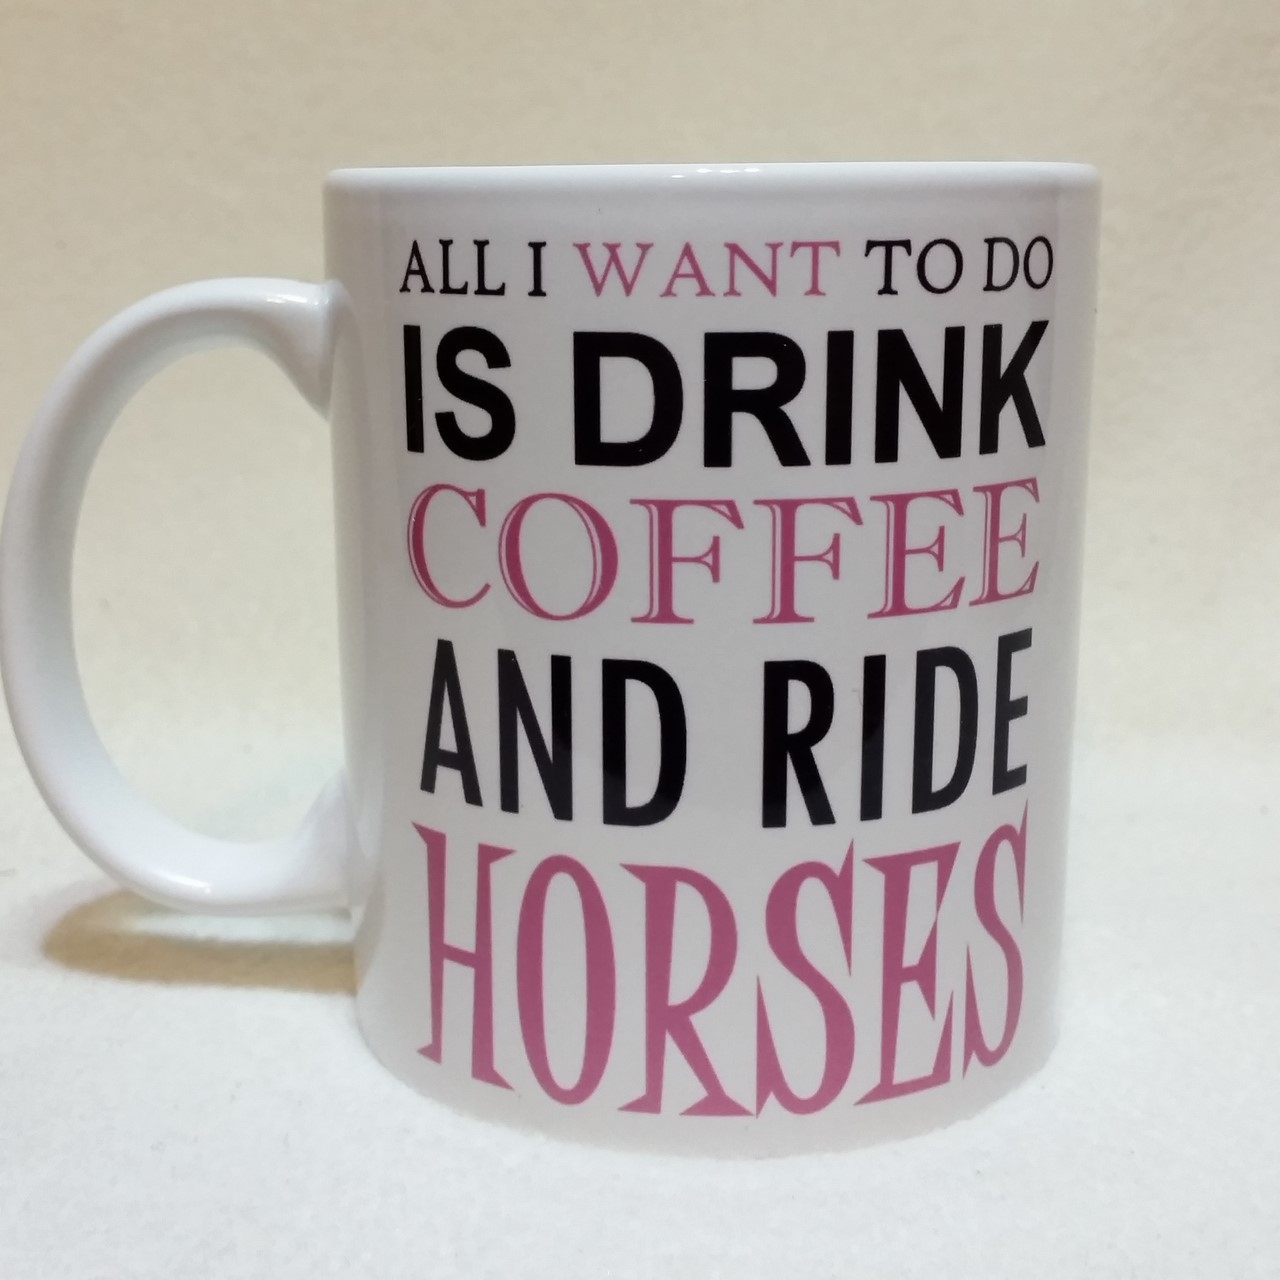 Drink and ride horses